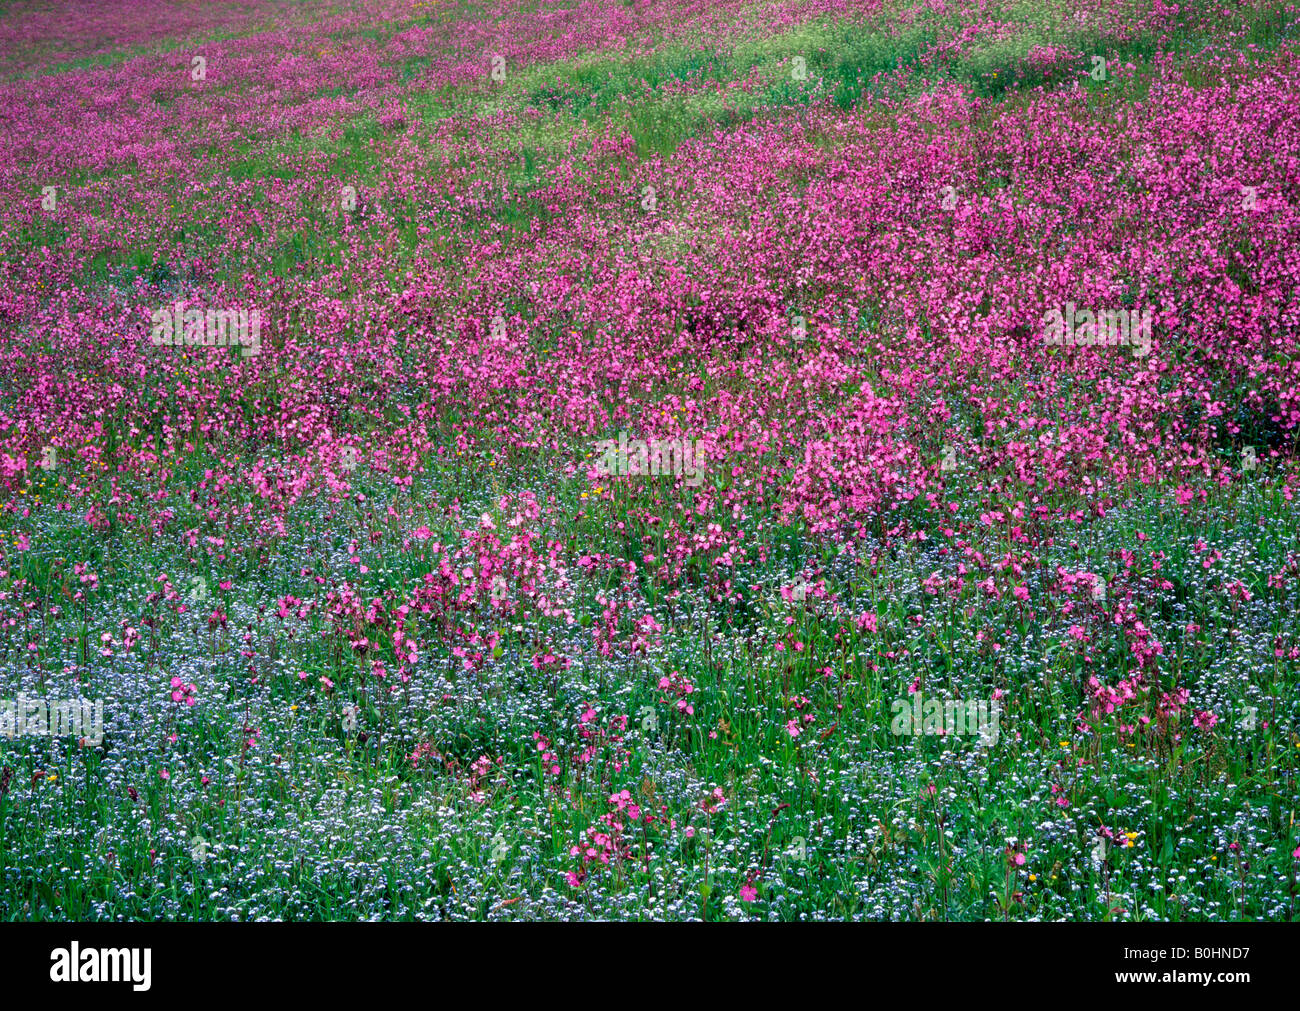 Red Campion (Silene dioica) and Wood Forget-Me-Nots (Myosotis sylvatica) in Aschau, Tyrol, Austria, Europe Stock Photo